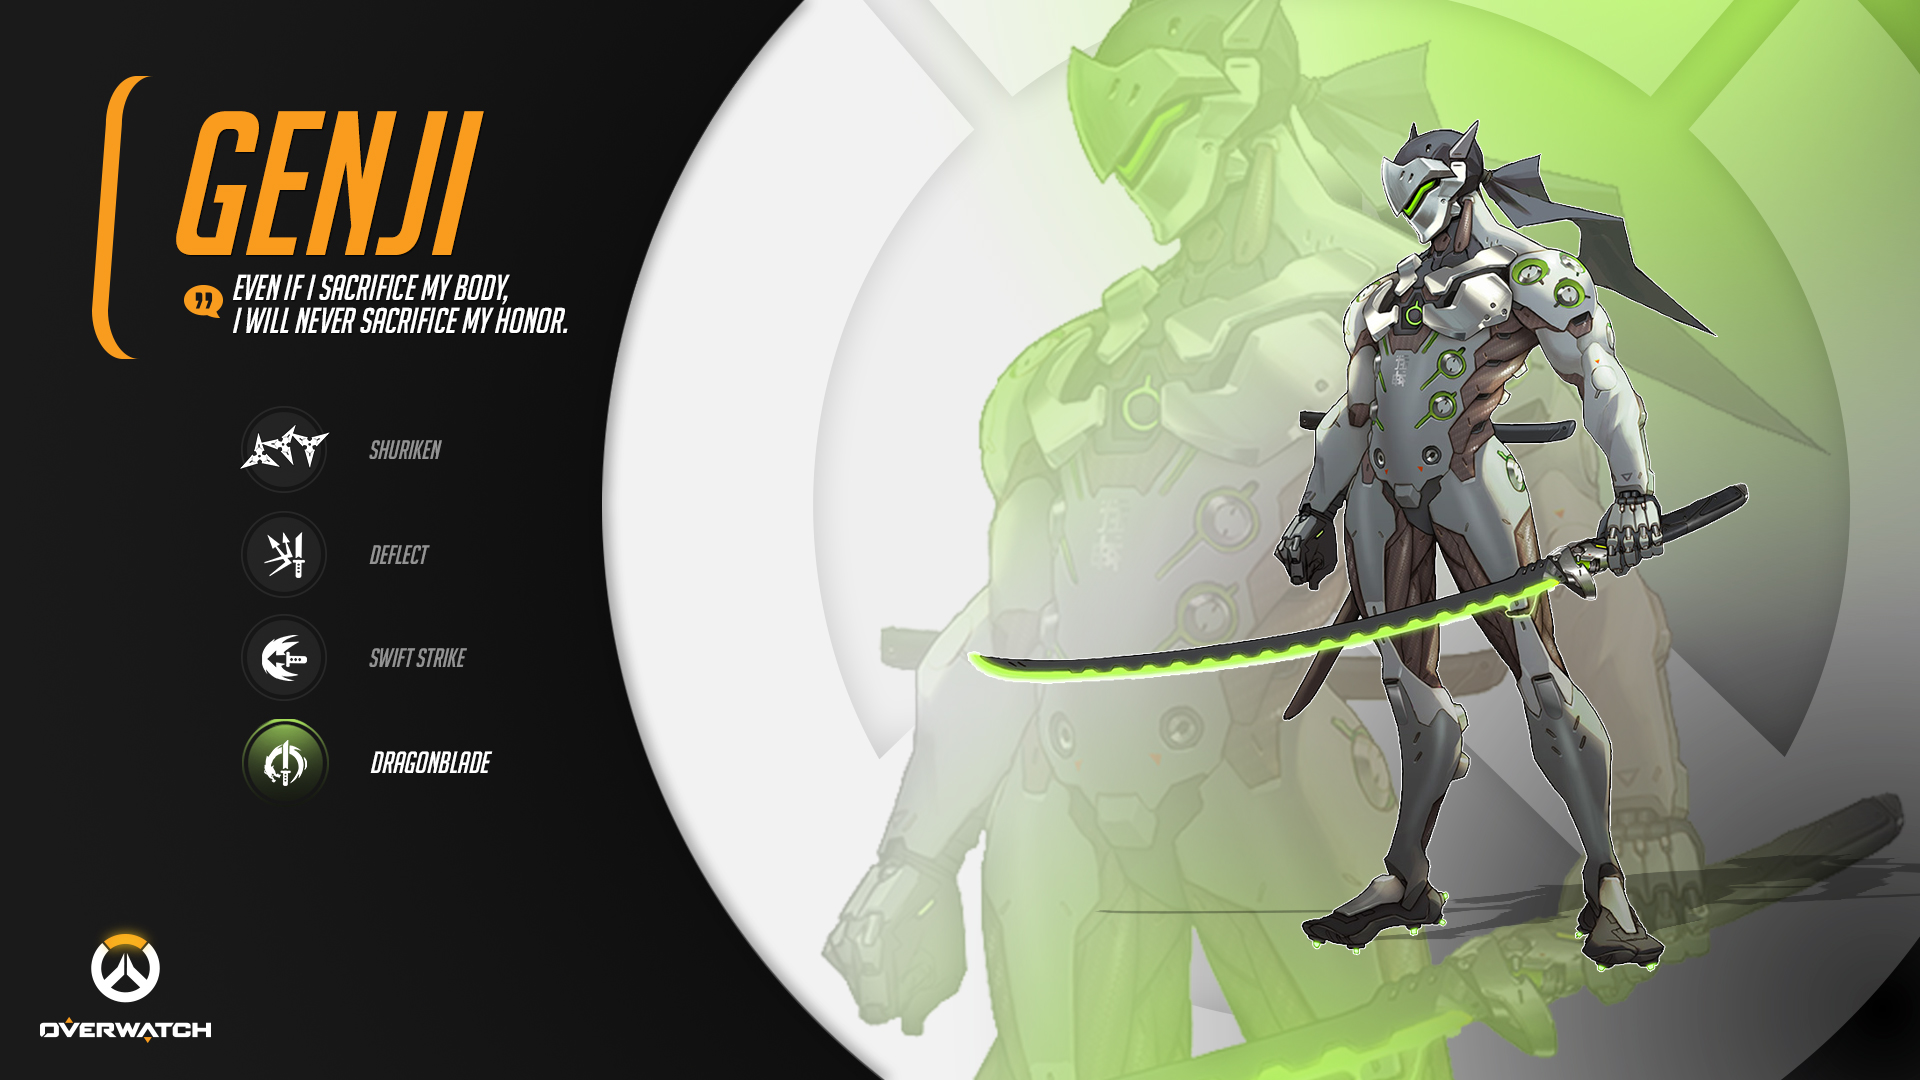 Overwatch Build Guide Team Guide Anubis Offense OwFire 1920x1080